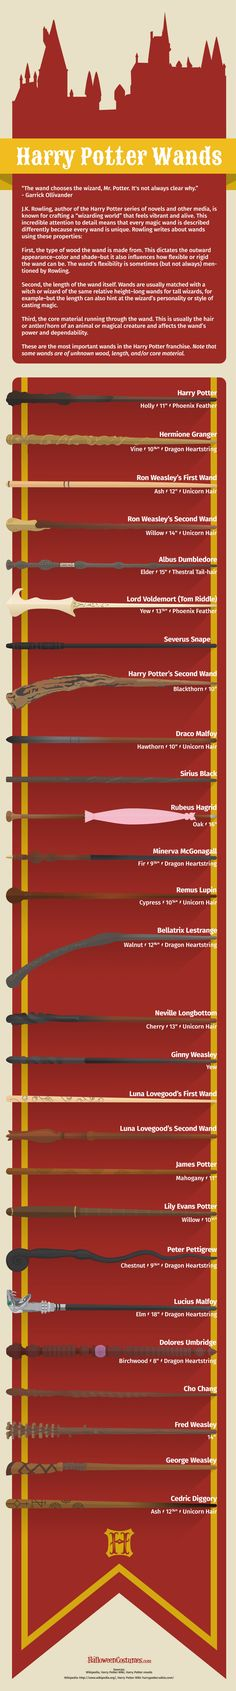 Harry Potter Wands [Infographic]